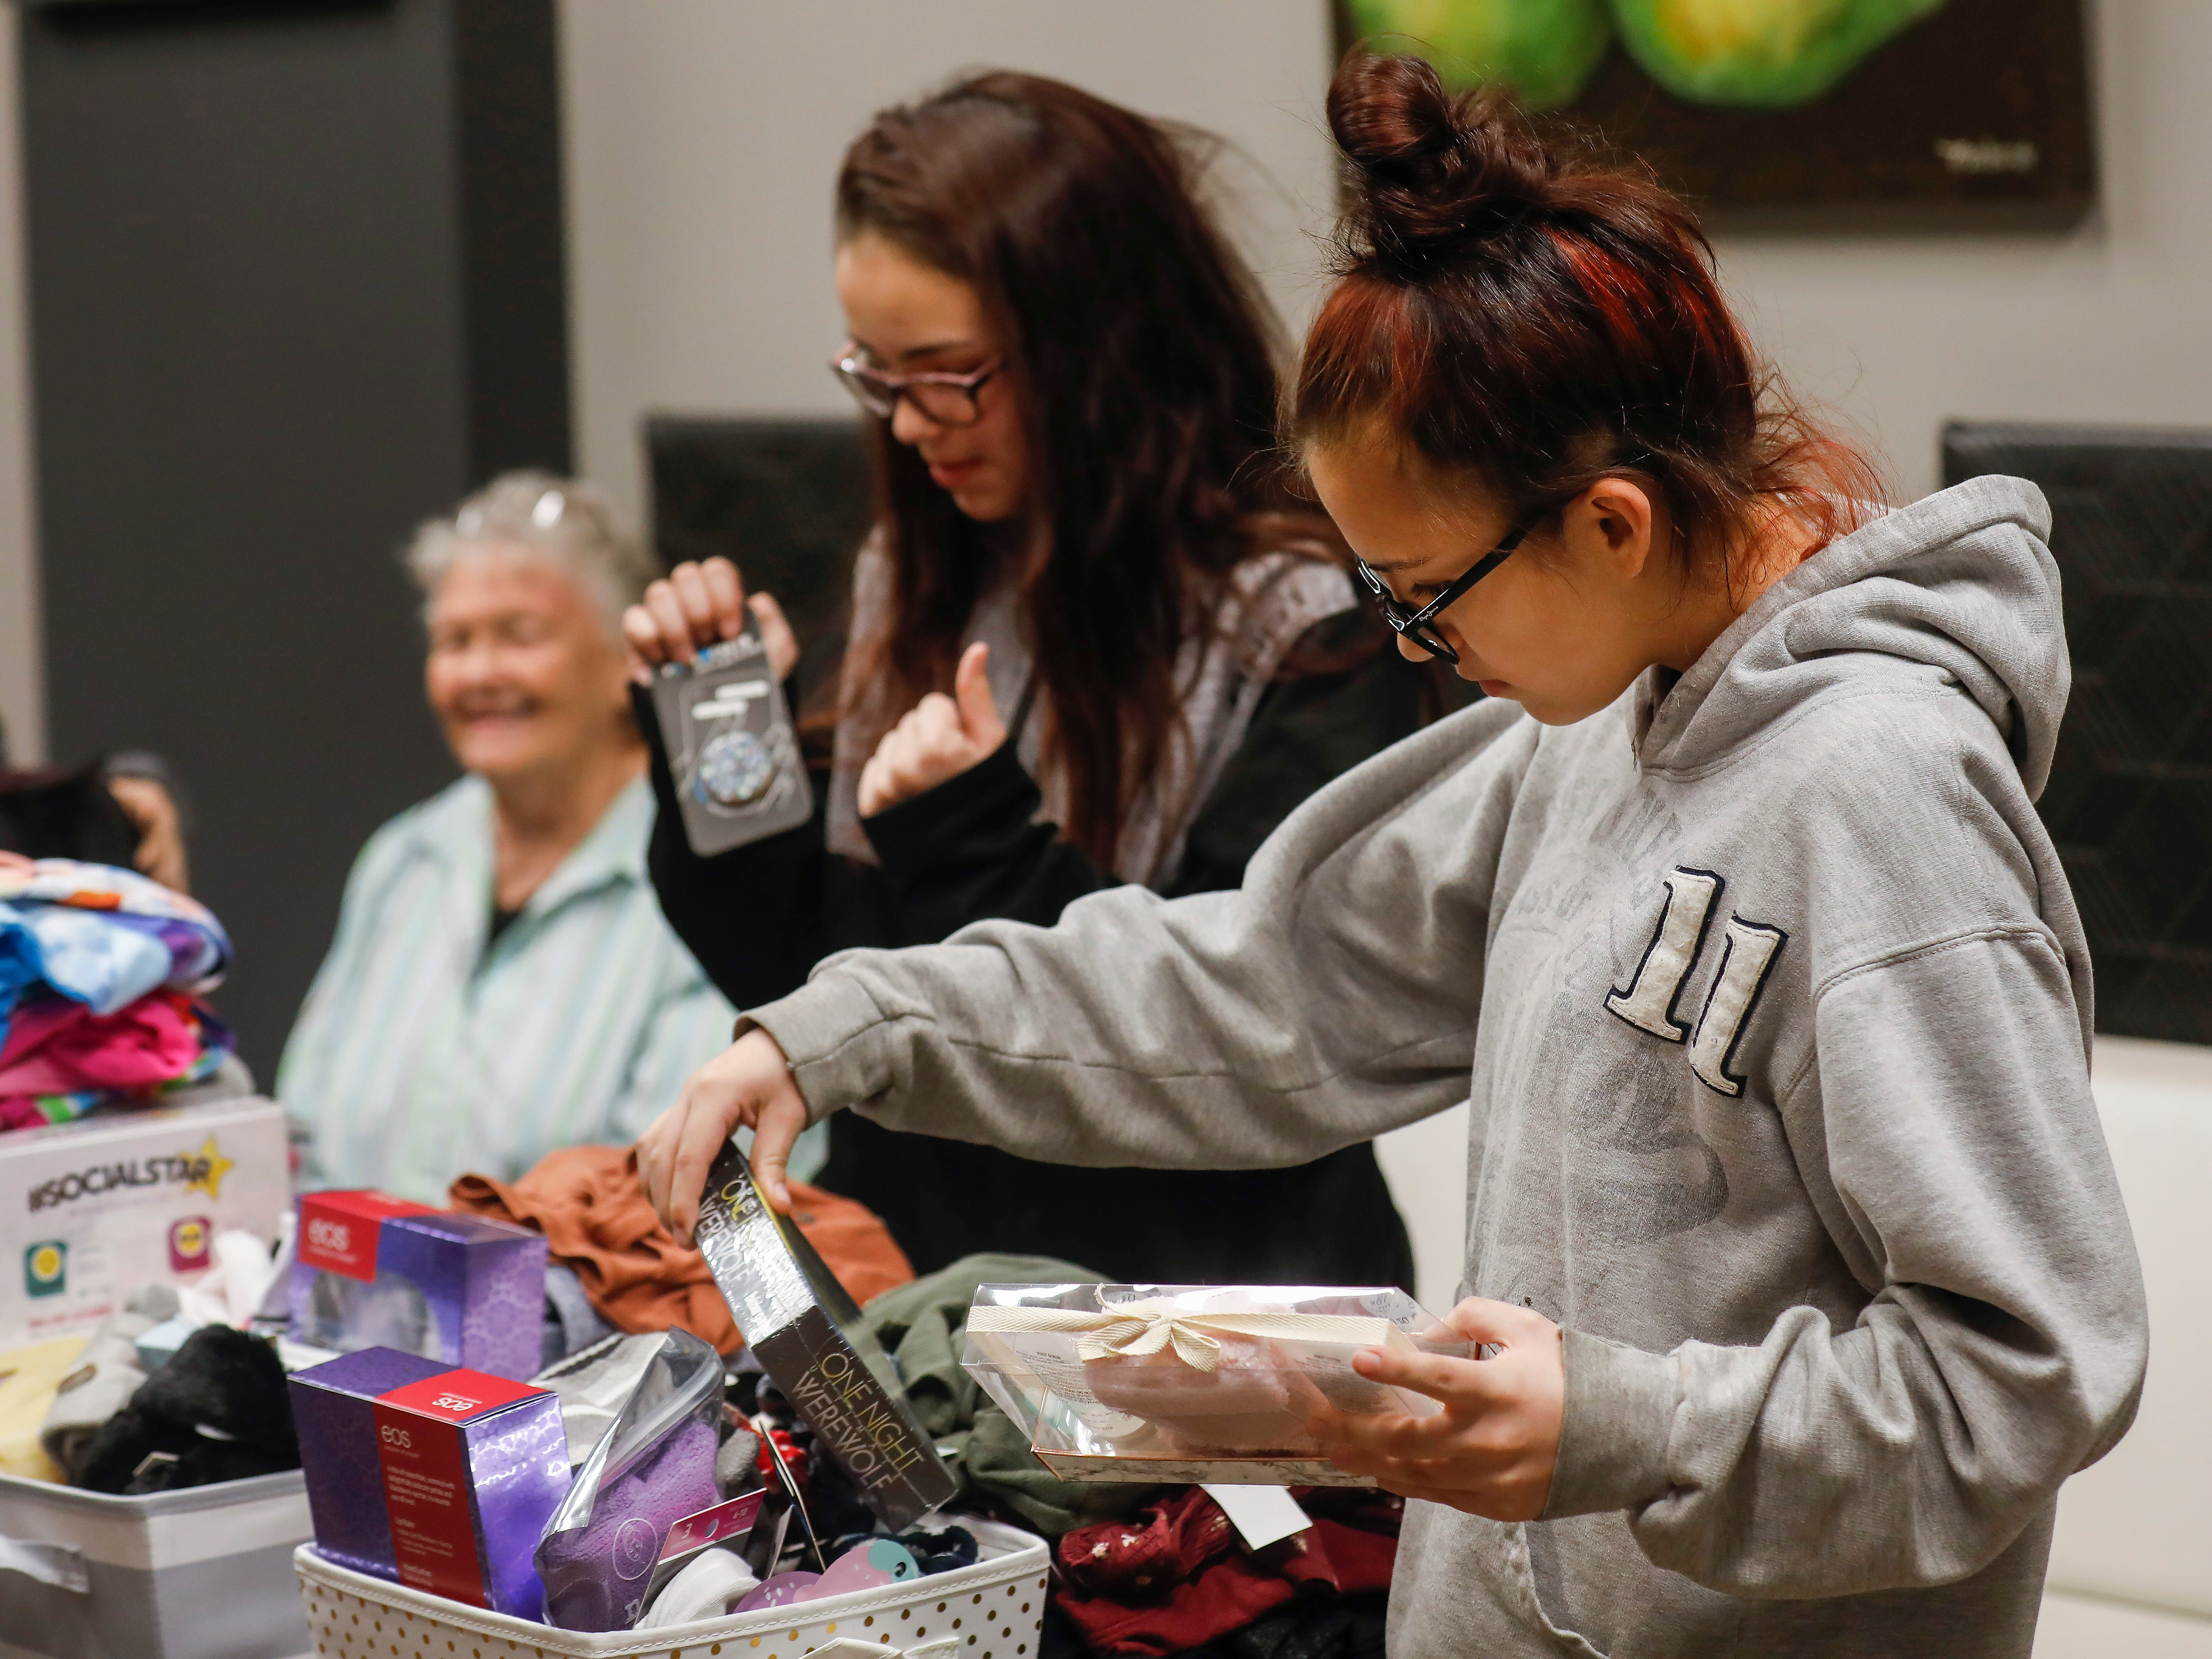 Callie Sahagun, right, looks at gifts that were given to her and her sisters by employees of J.D. Byrider on Wednesday, Dec. 19, 2018. The Sahaguns' grandmother, Barbara Foster, was killed during a road rage incident on Nov. 20.